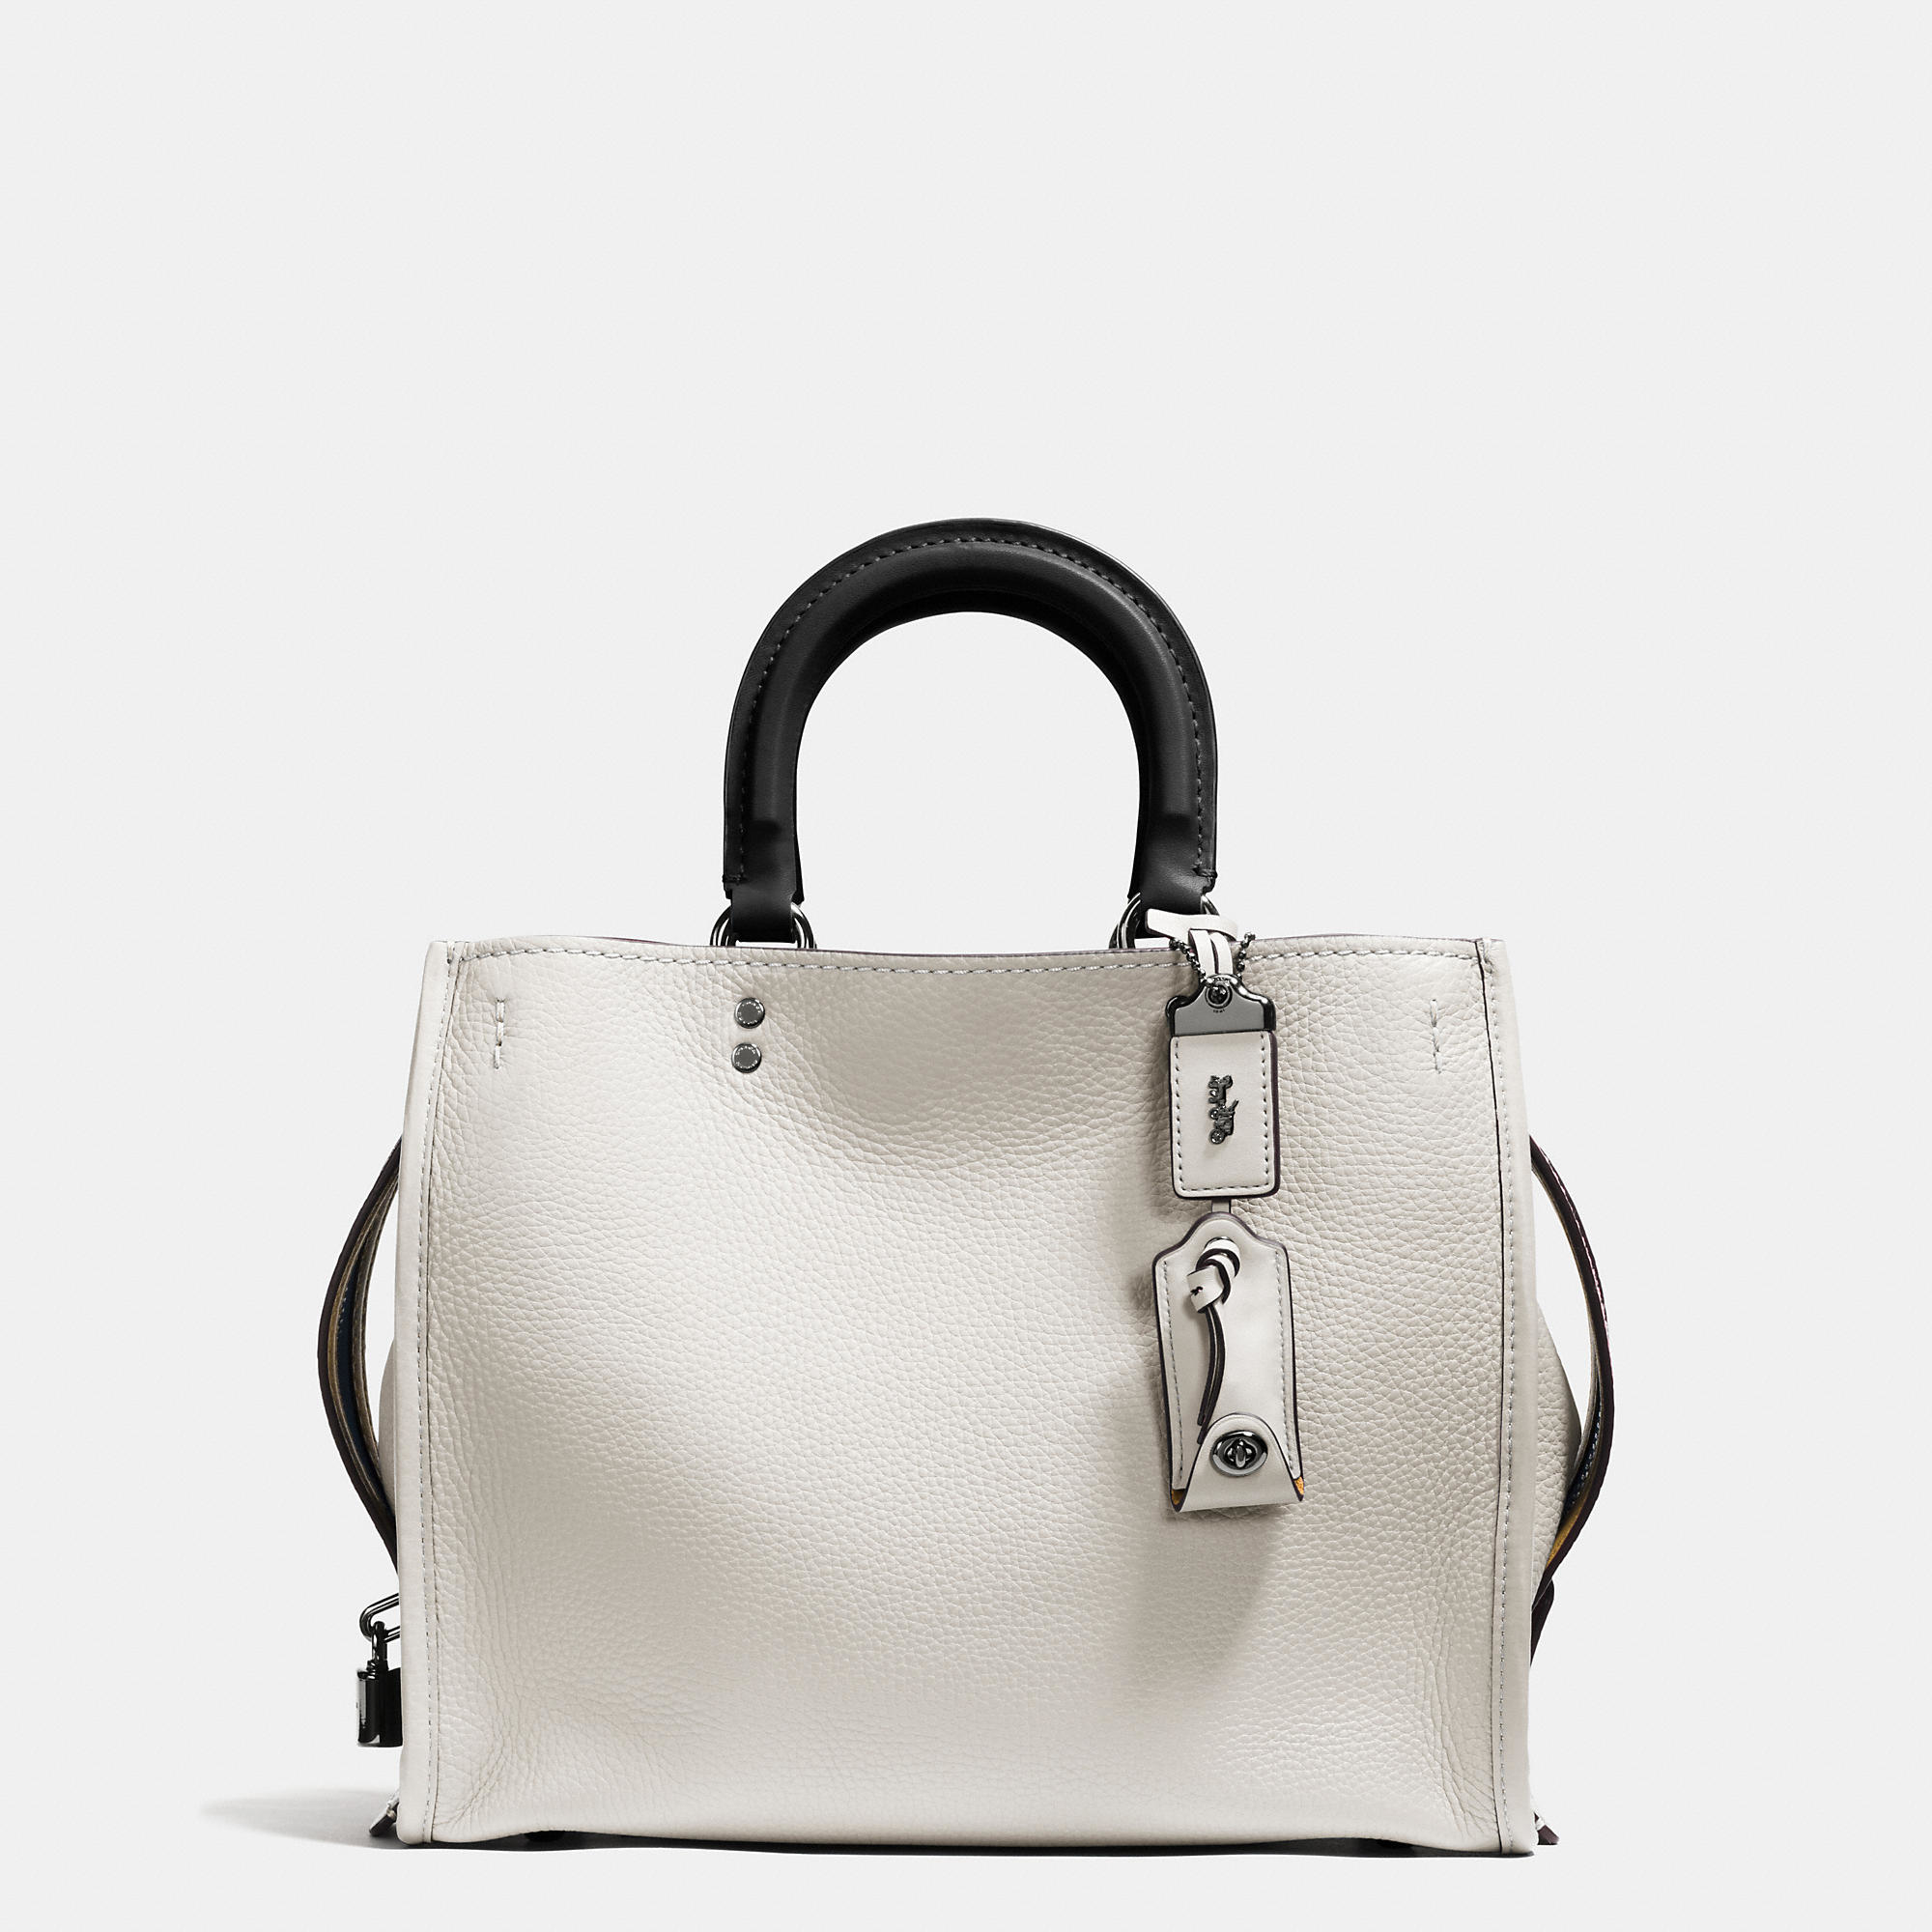 Lyst - COACH Rogue Bag In Glovetanned Pebble Leather in White 50d4feaf87